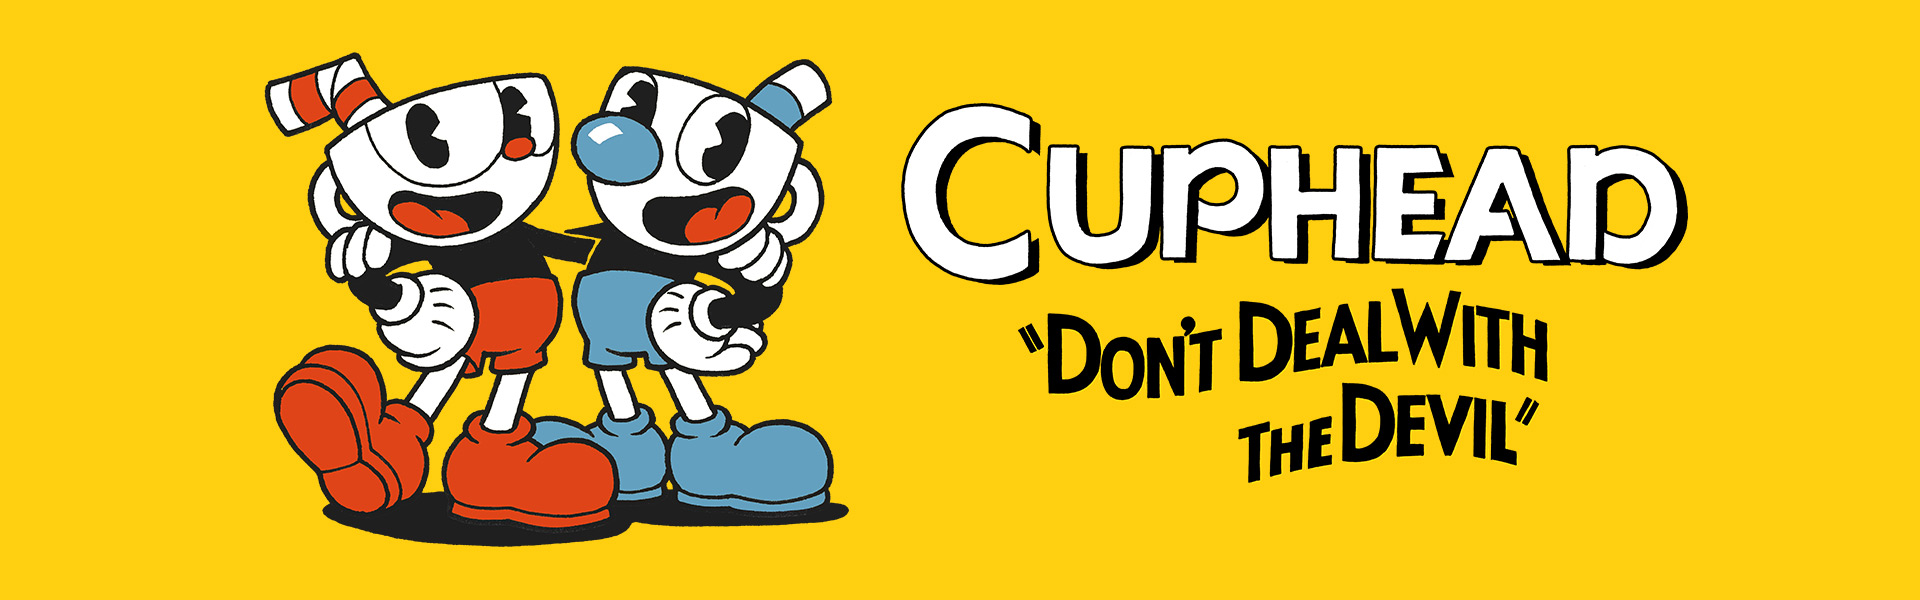 cuphead, Don't Deal with the Devil, a cuphead mugman és ms. chalice karakterei pózolnak